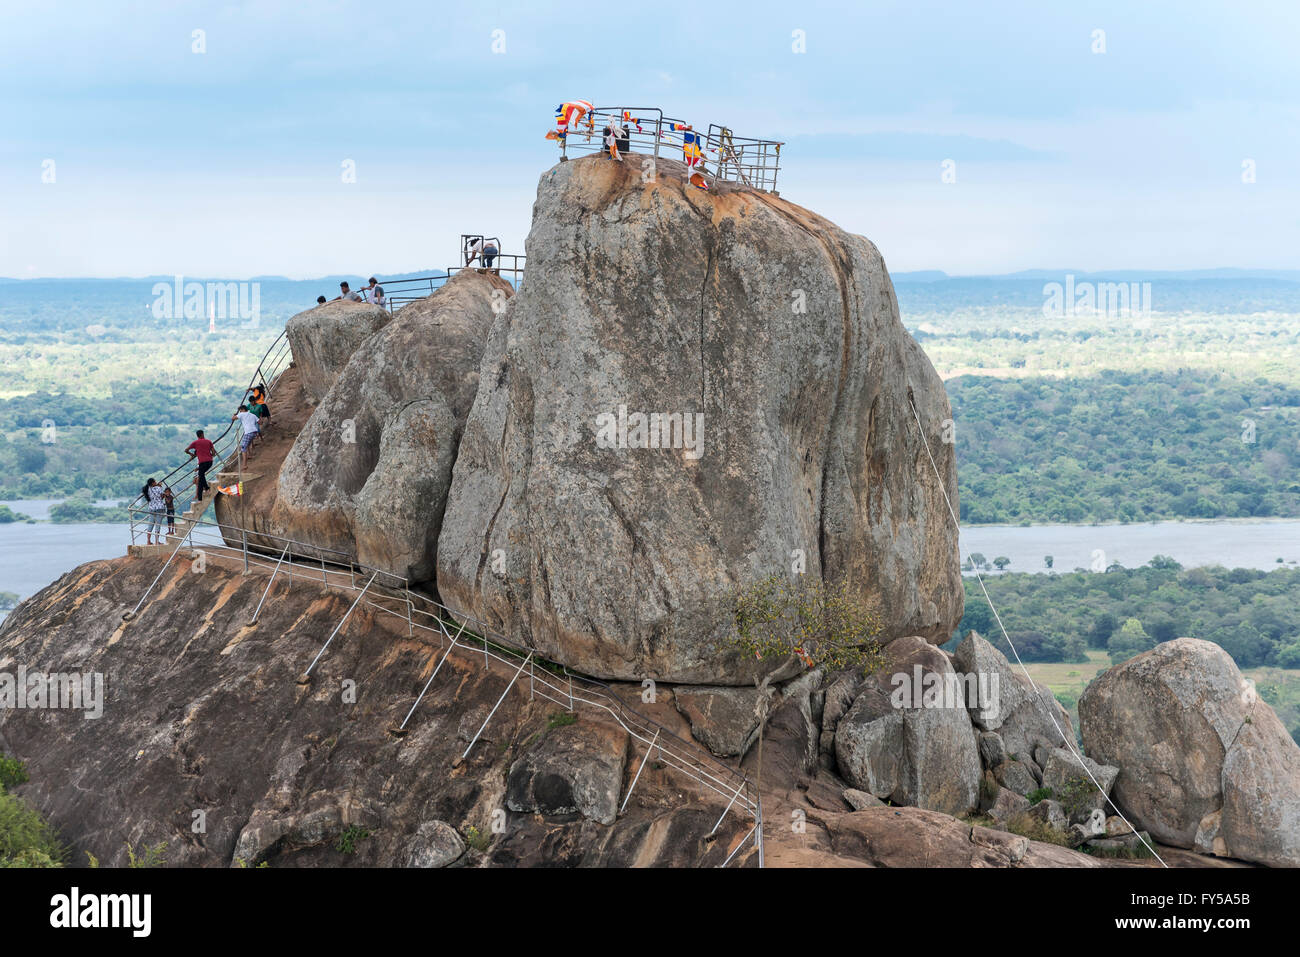 Aradhana Gala Rock, Mihintale, Sri Lanka Stock Photo